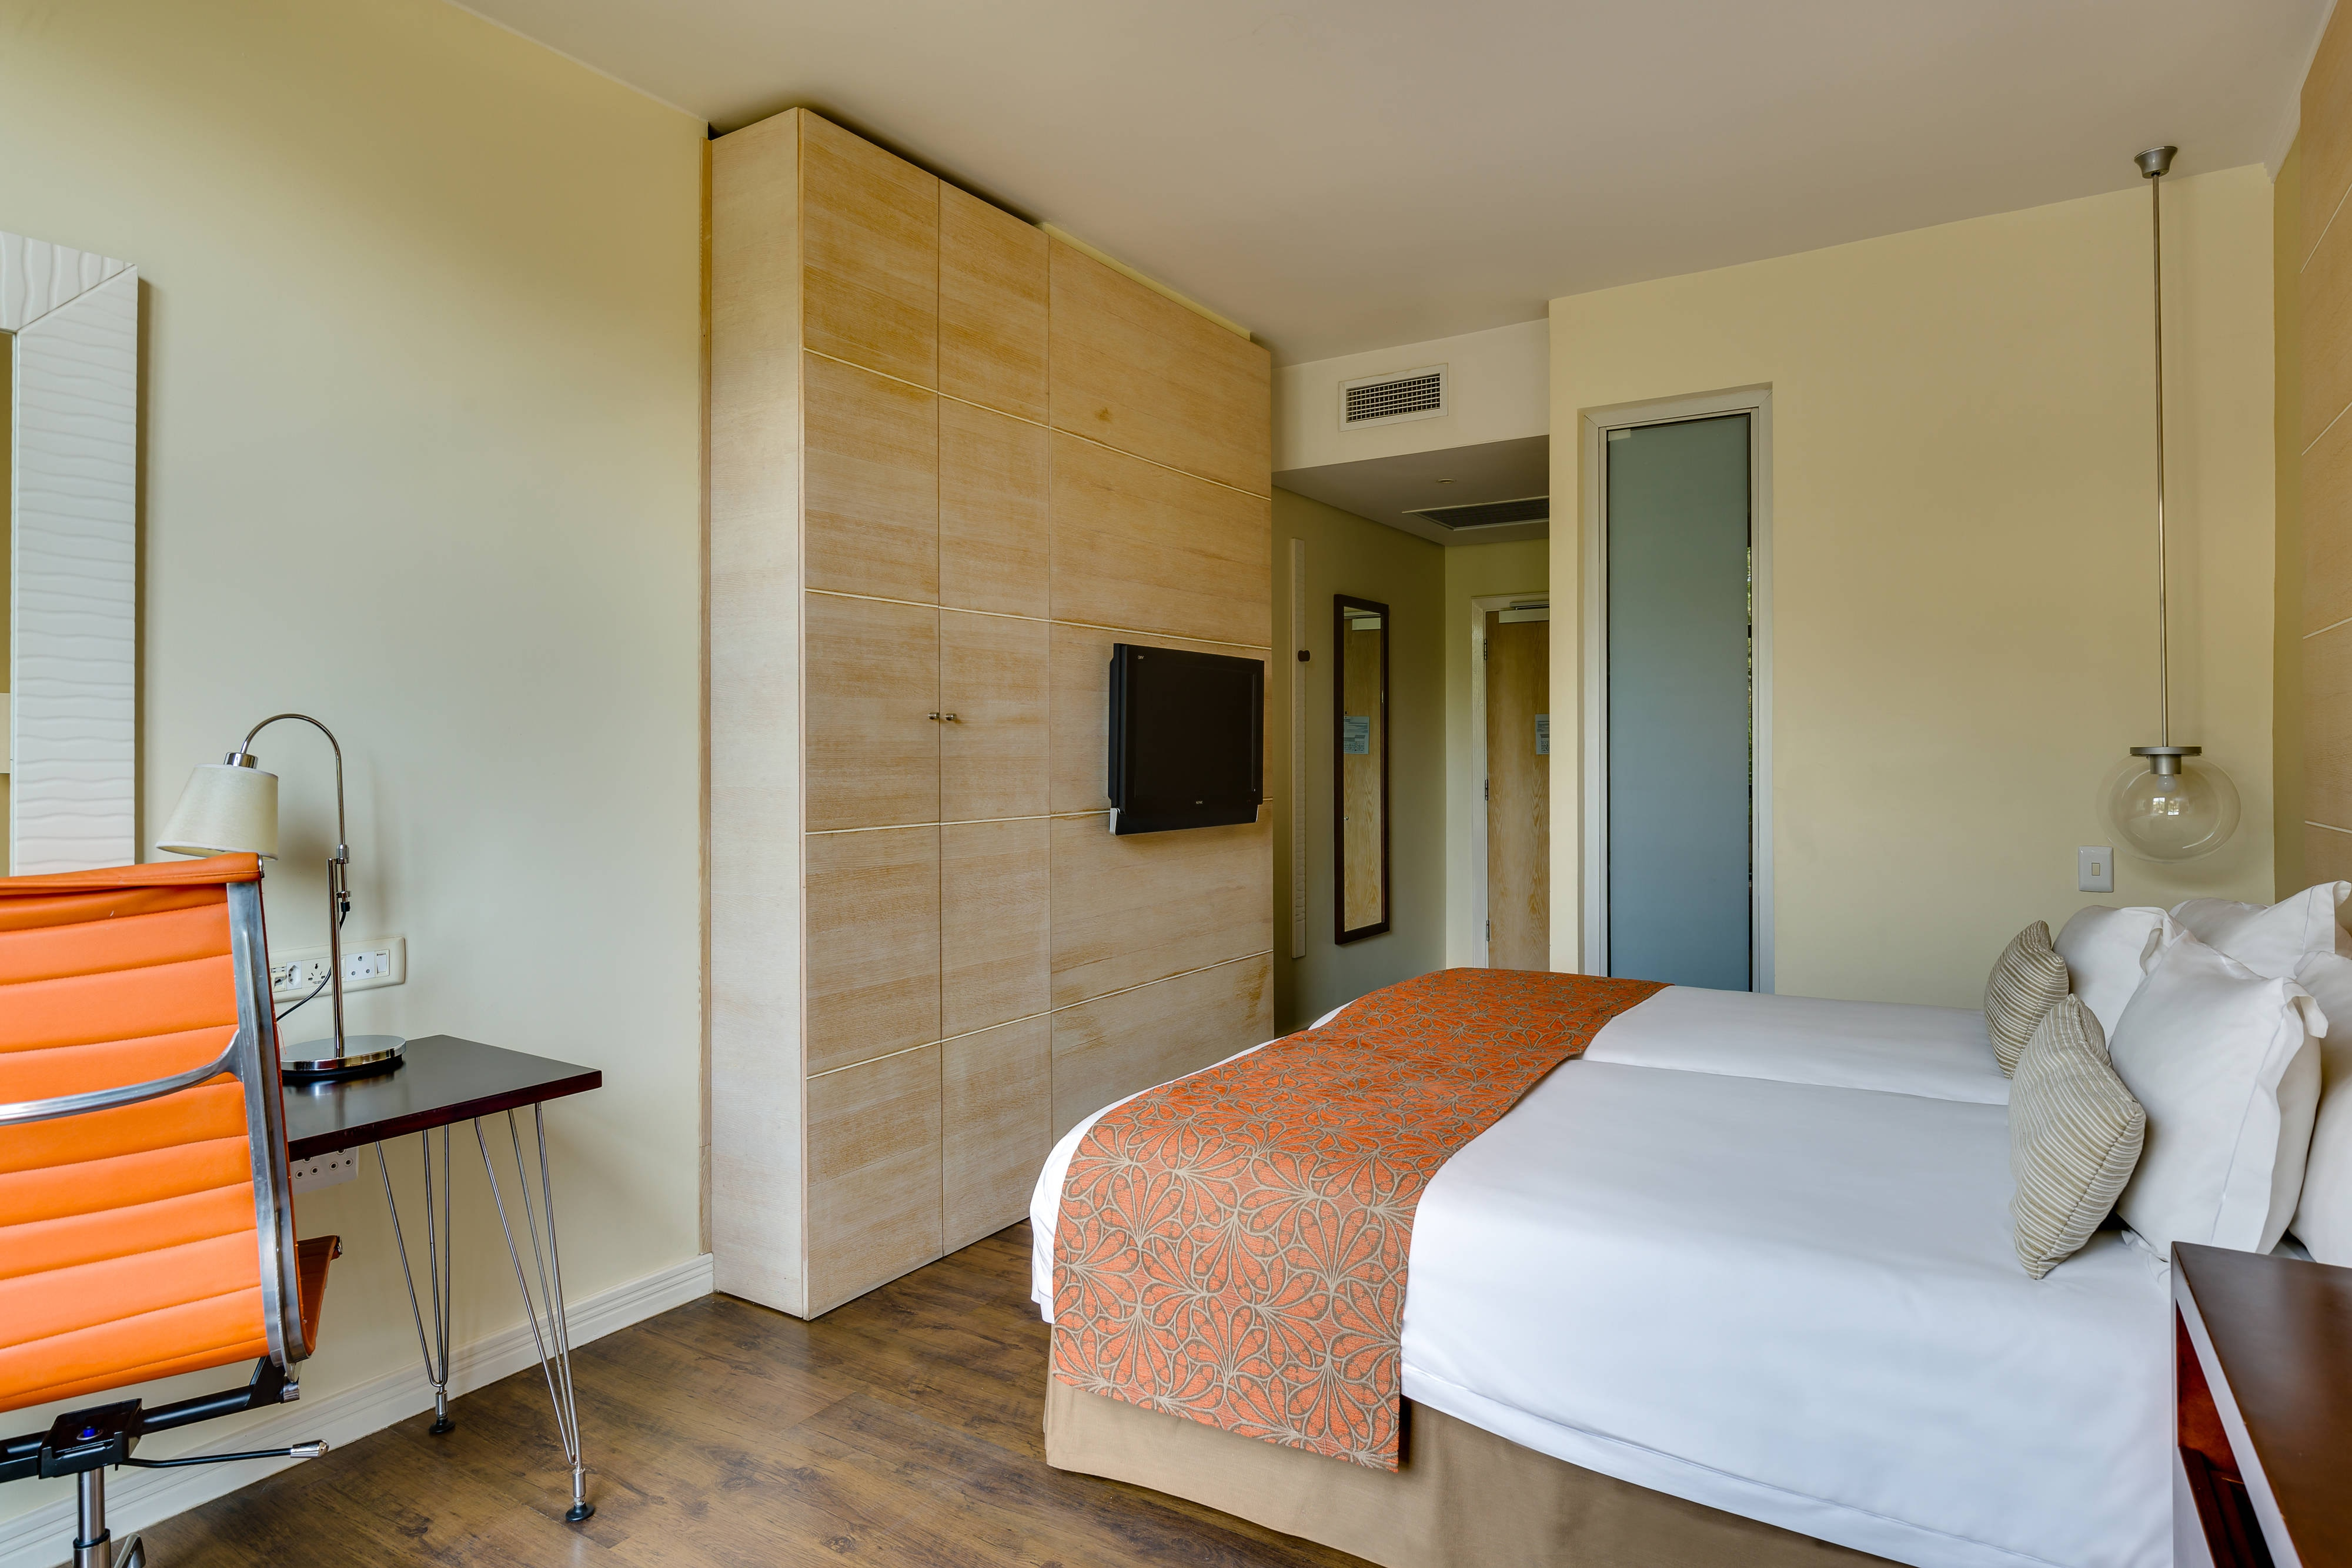 Standard King guest room accommodation